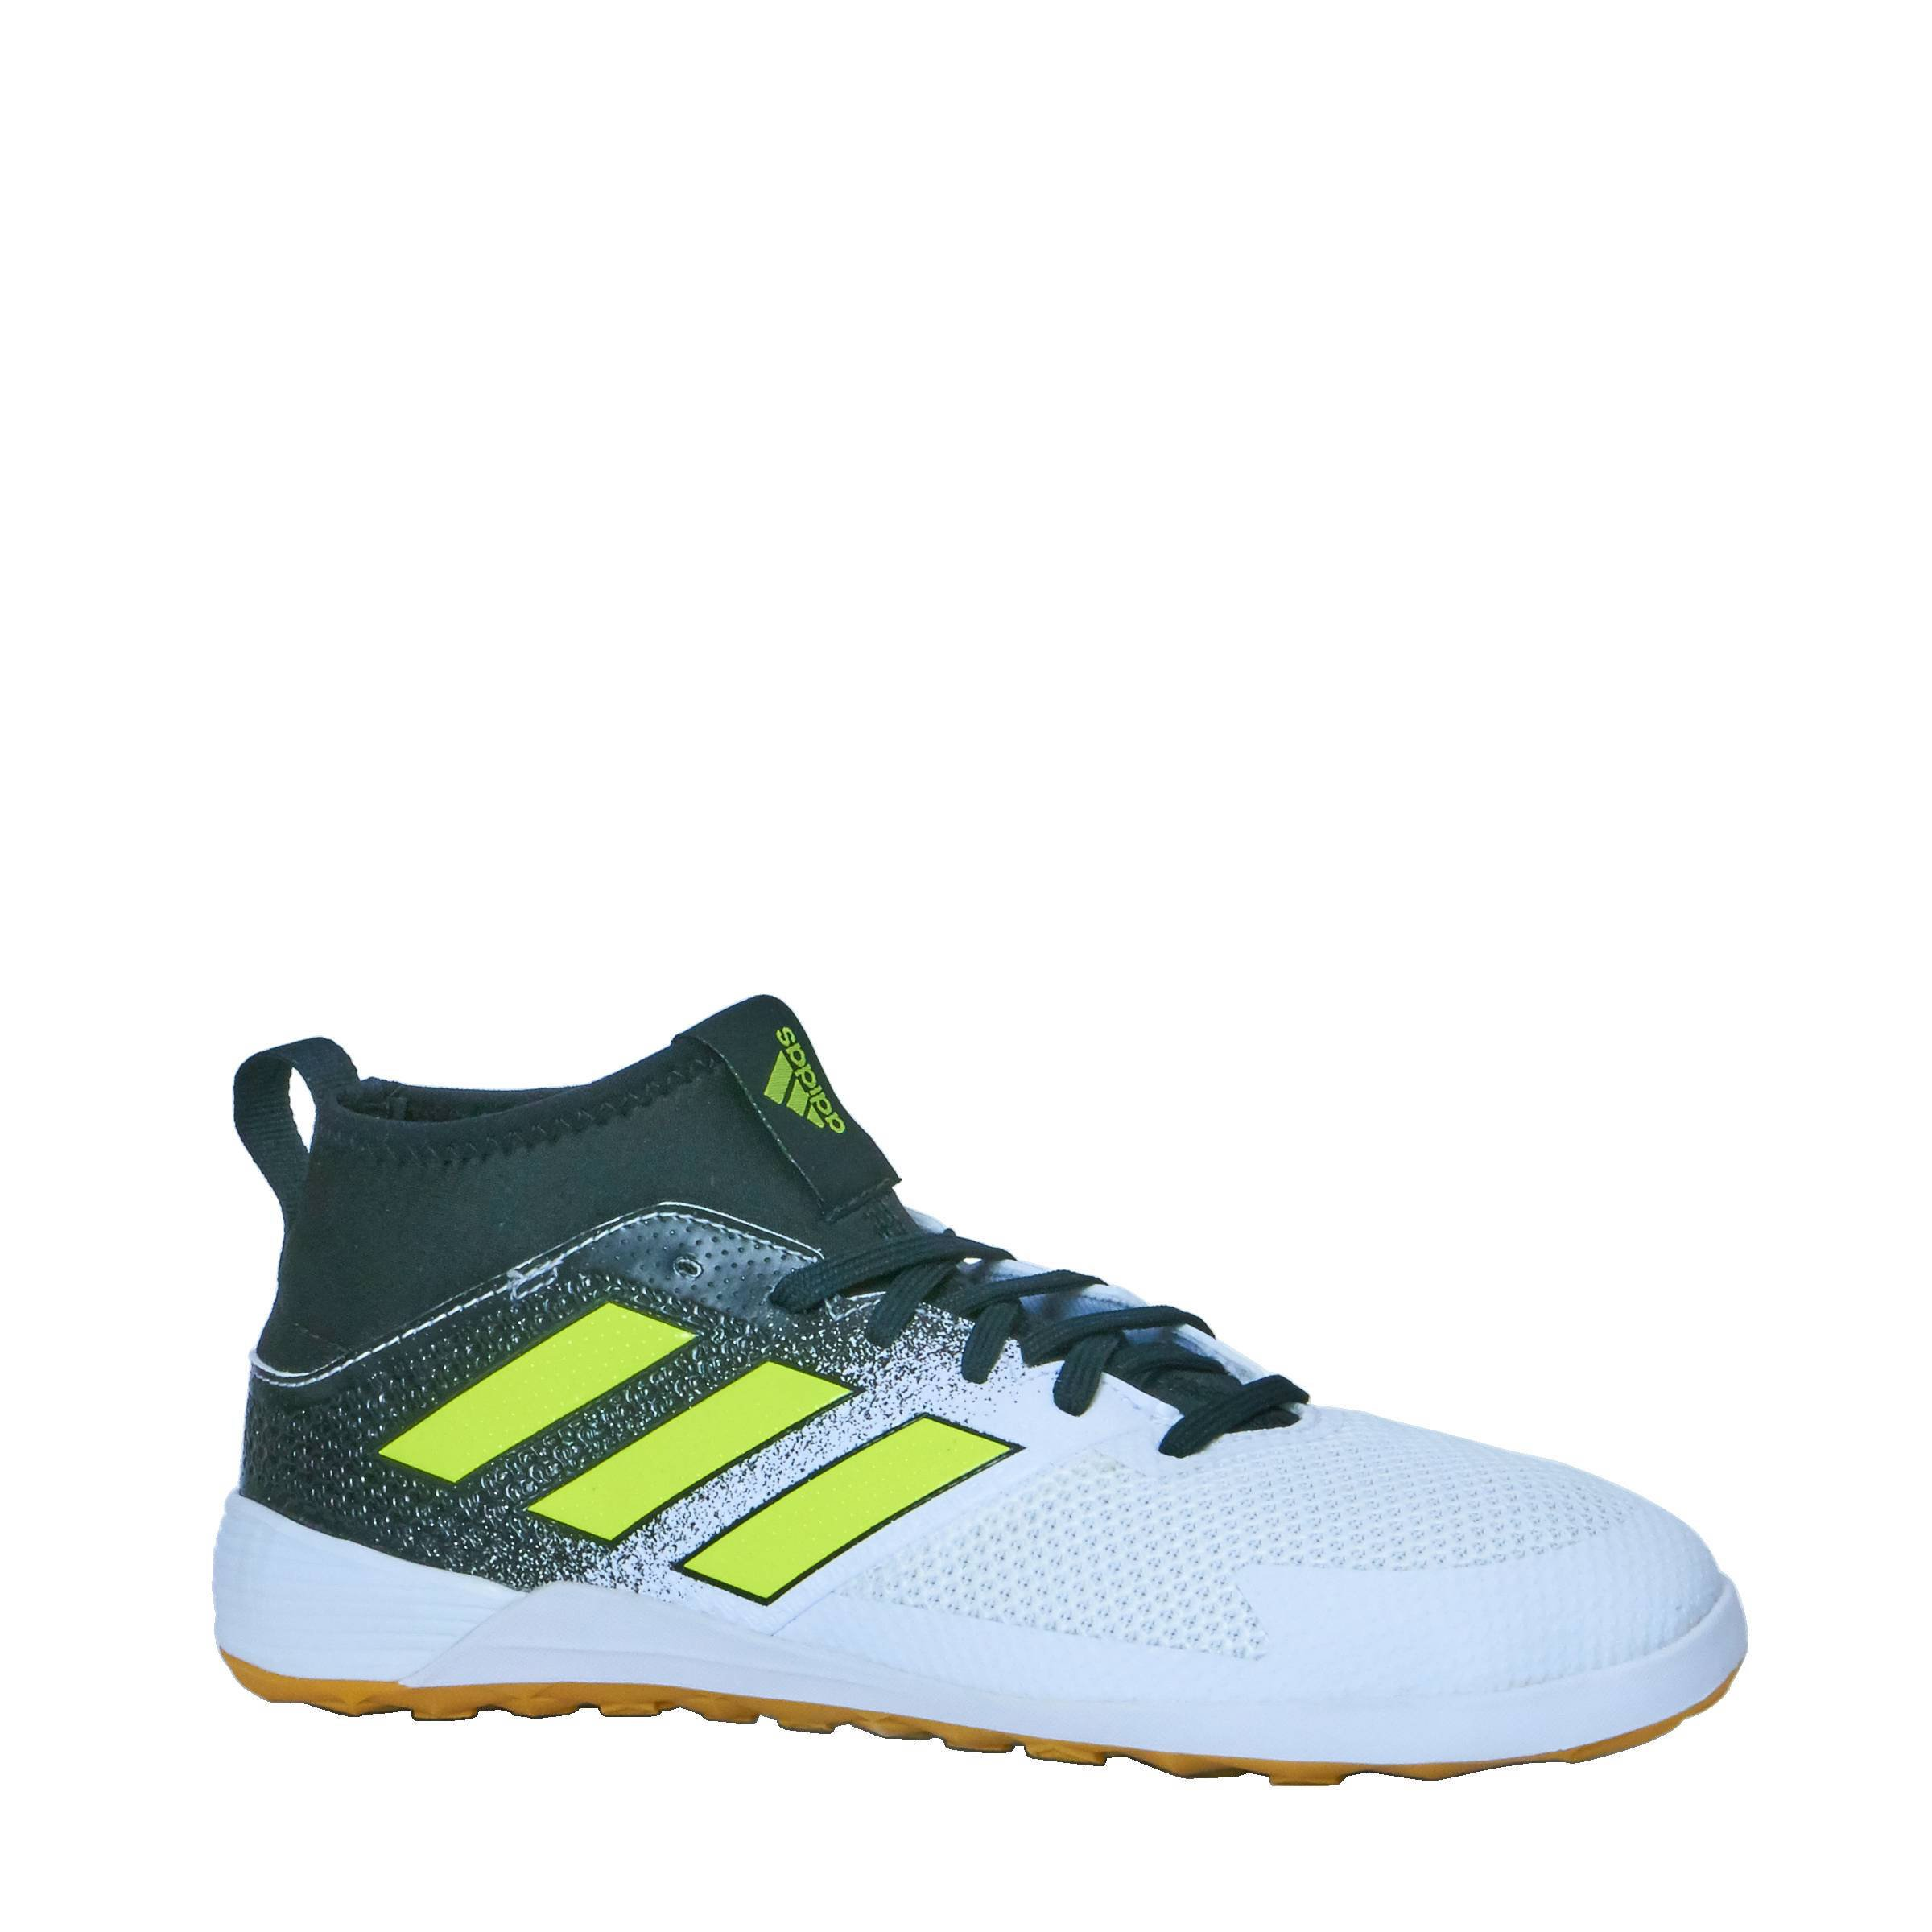 adidas performance adidas Ace Tango 17.3 IN